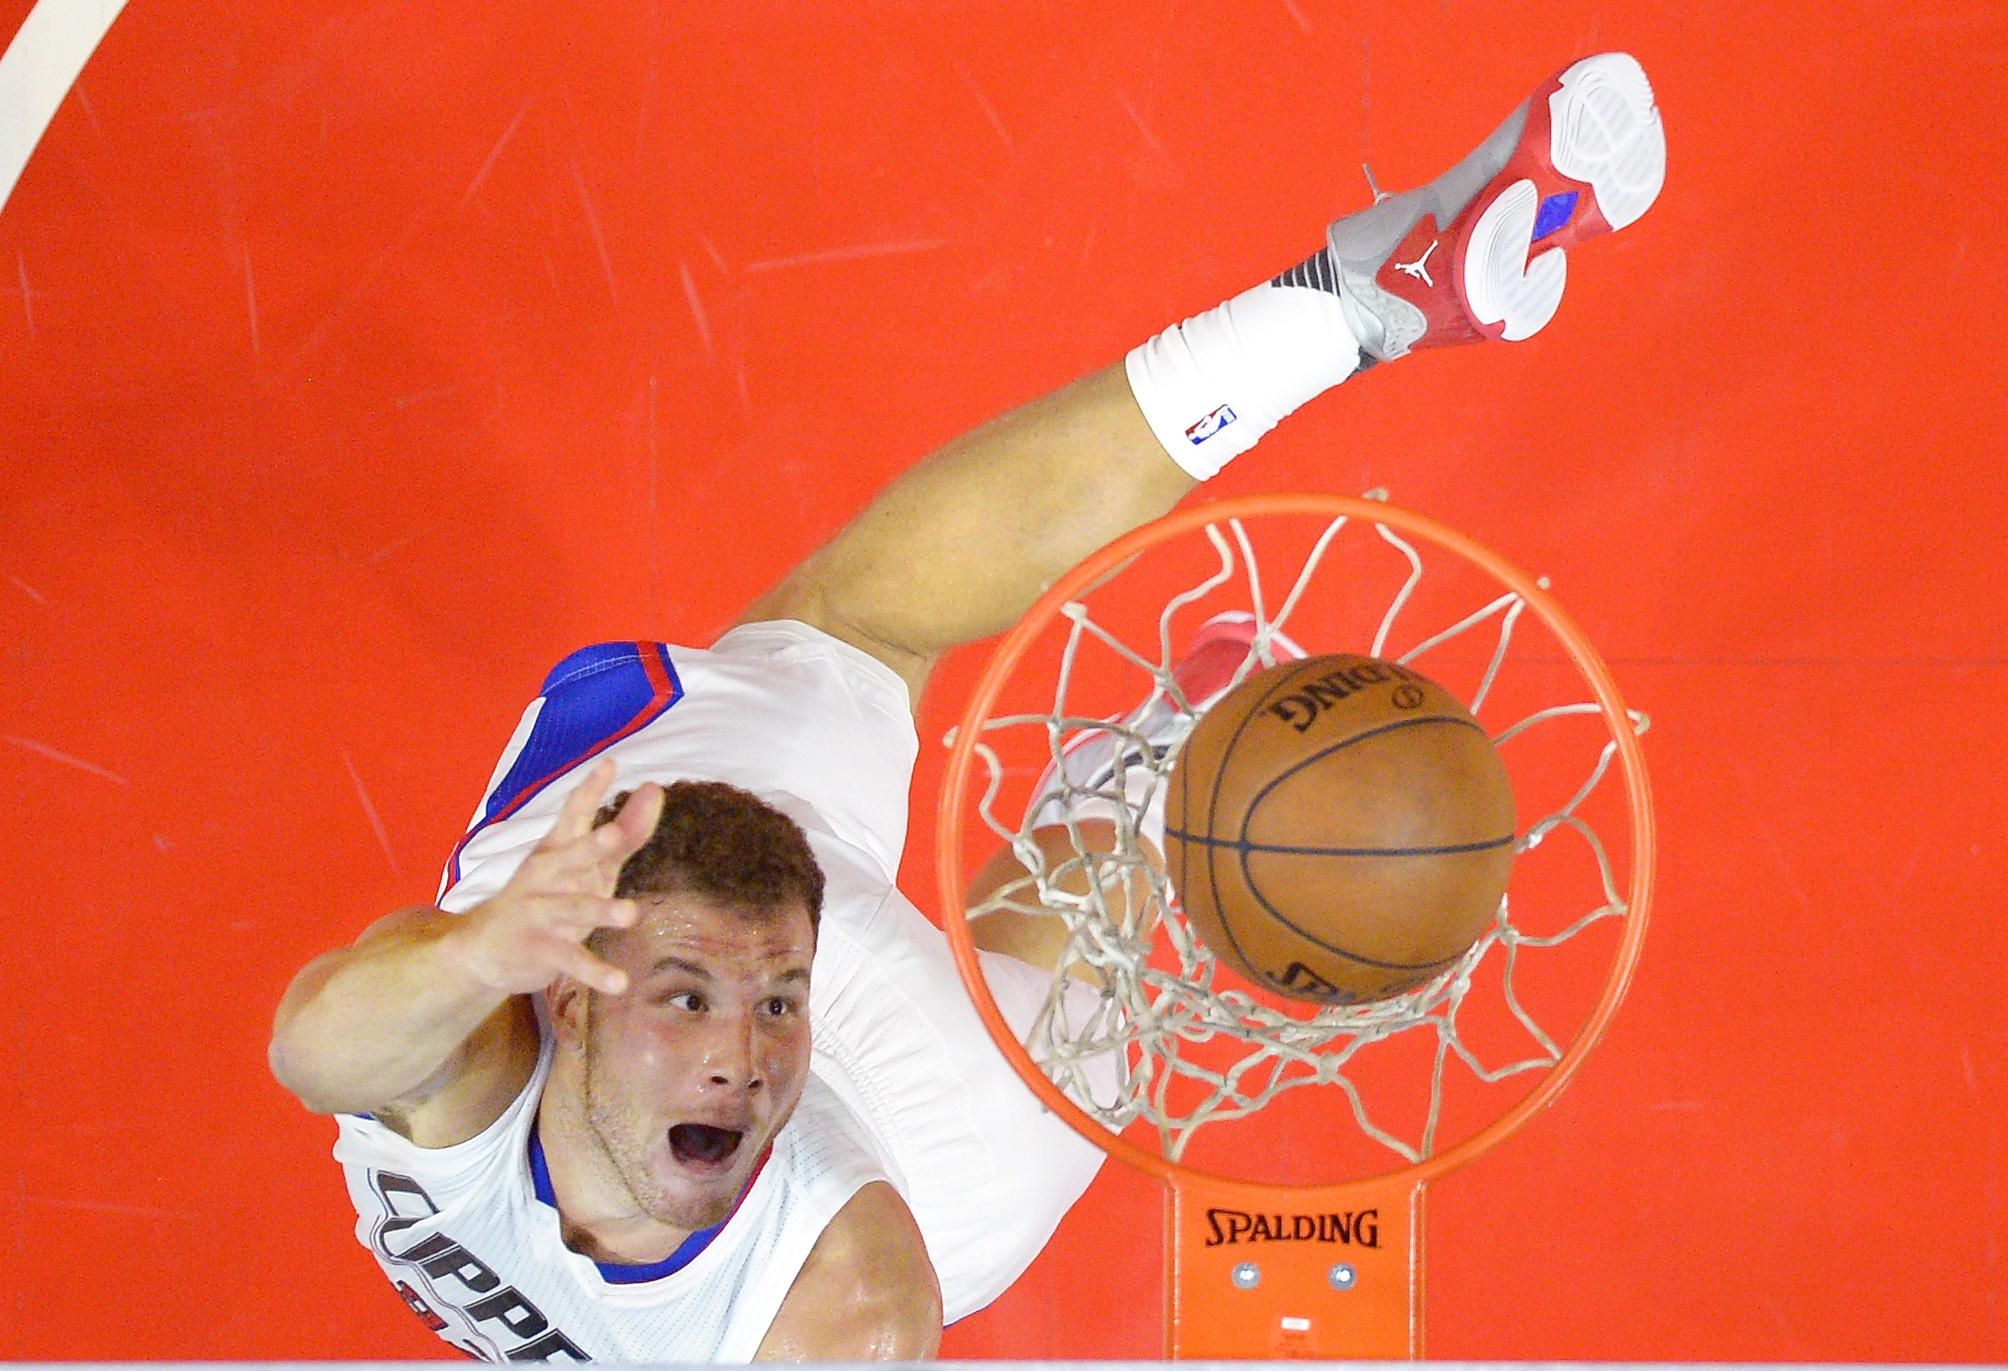 Los Angeles Clippers forward Blake Griffin shoots during the first half of an NBA basketball game against the Phoenix Suns, Monday, Nov. 2, 2015, in Los Angeles. (AP Photo/Mark J. Terrill)